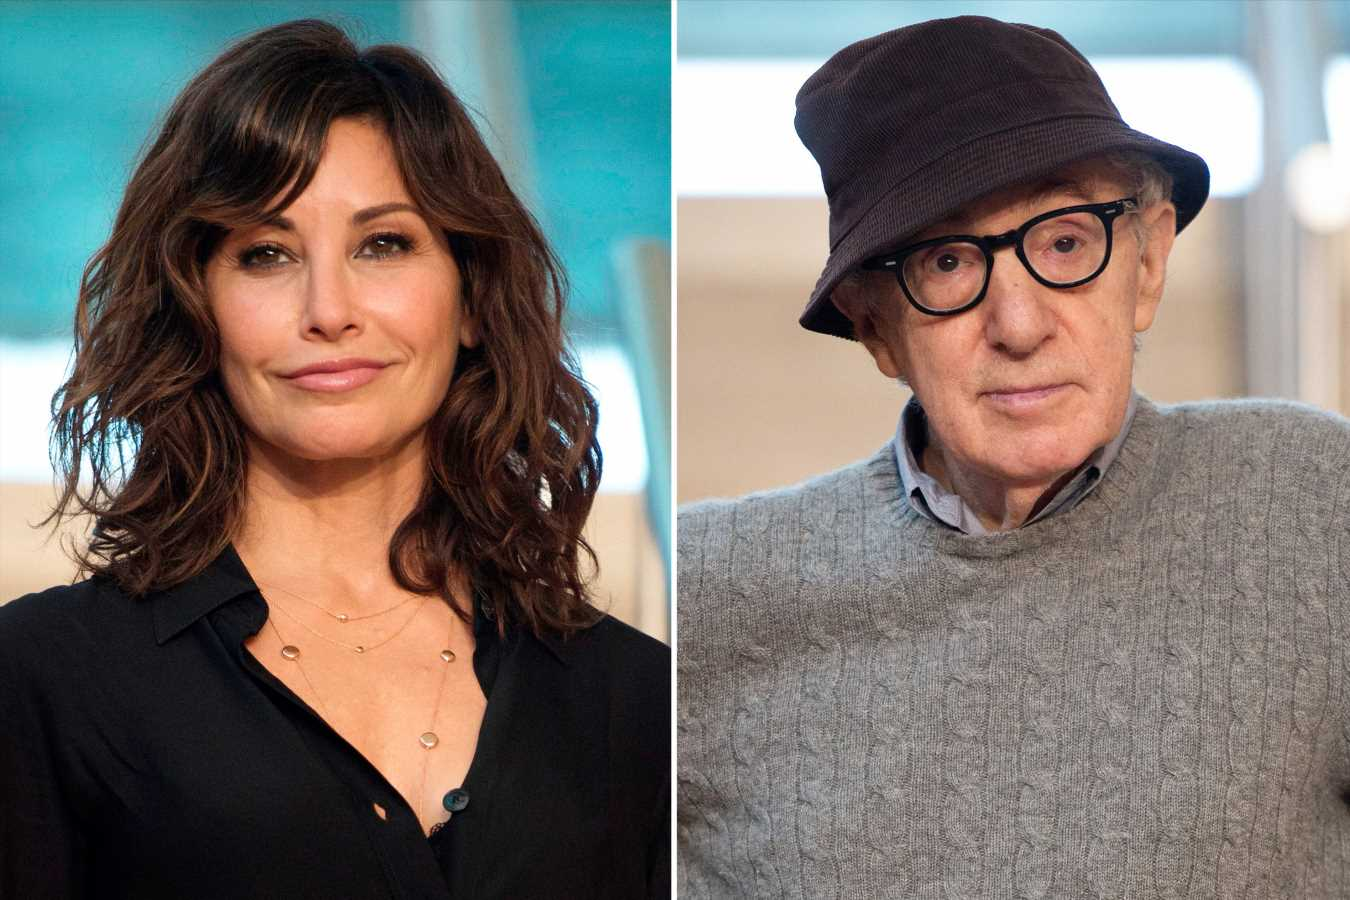 Gina Gershon Says Working with Woody Allen 'Feels Like a Dream Come True'